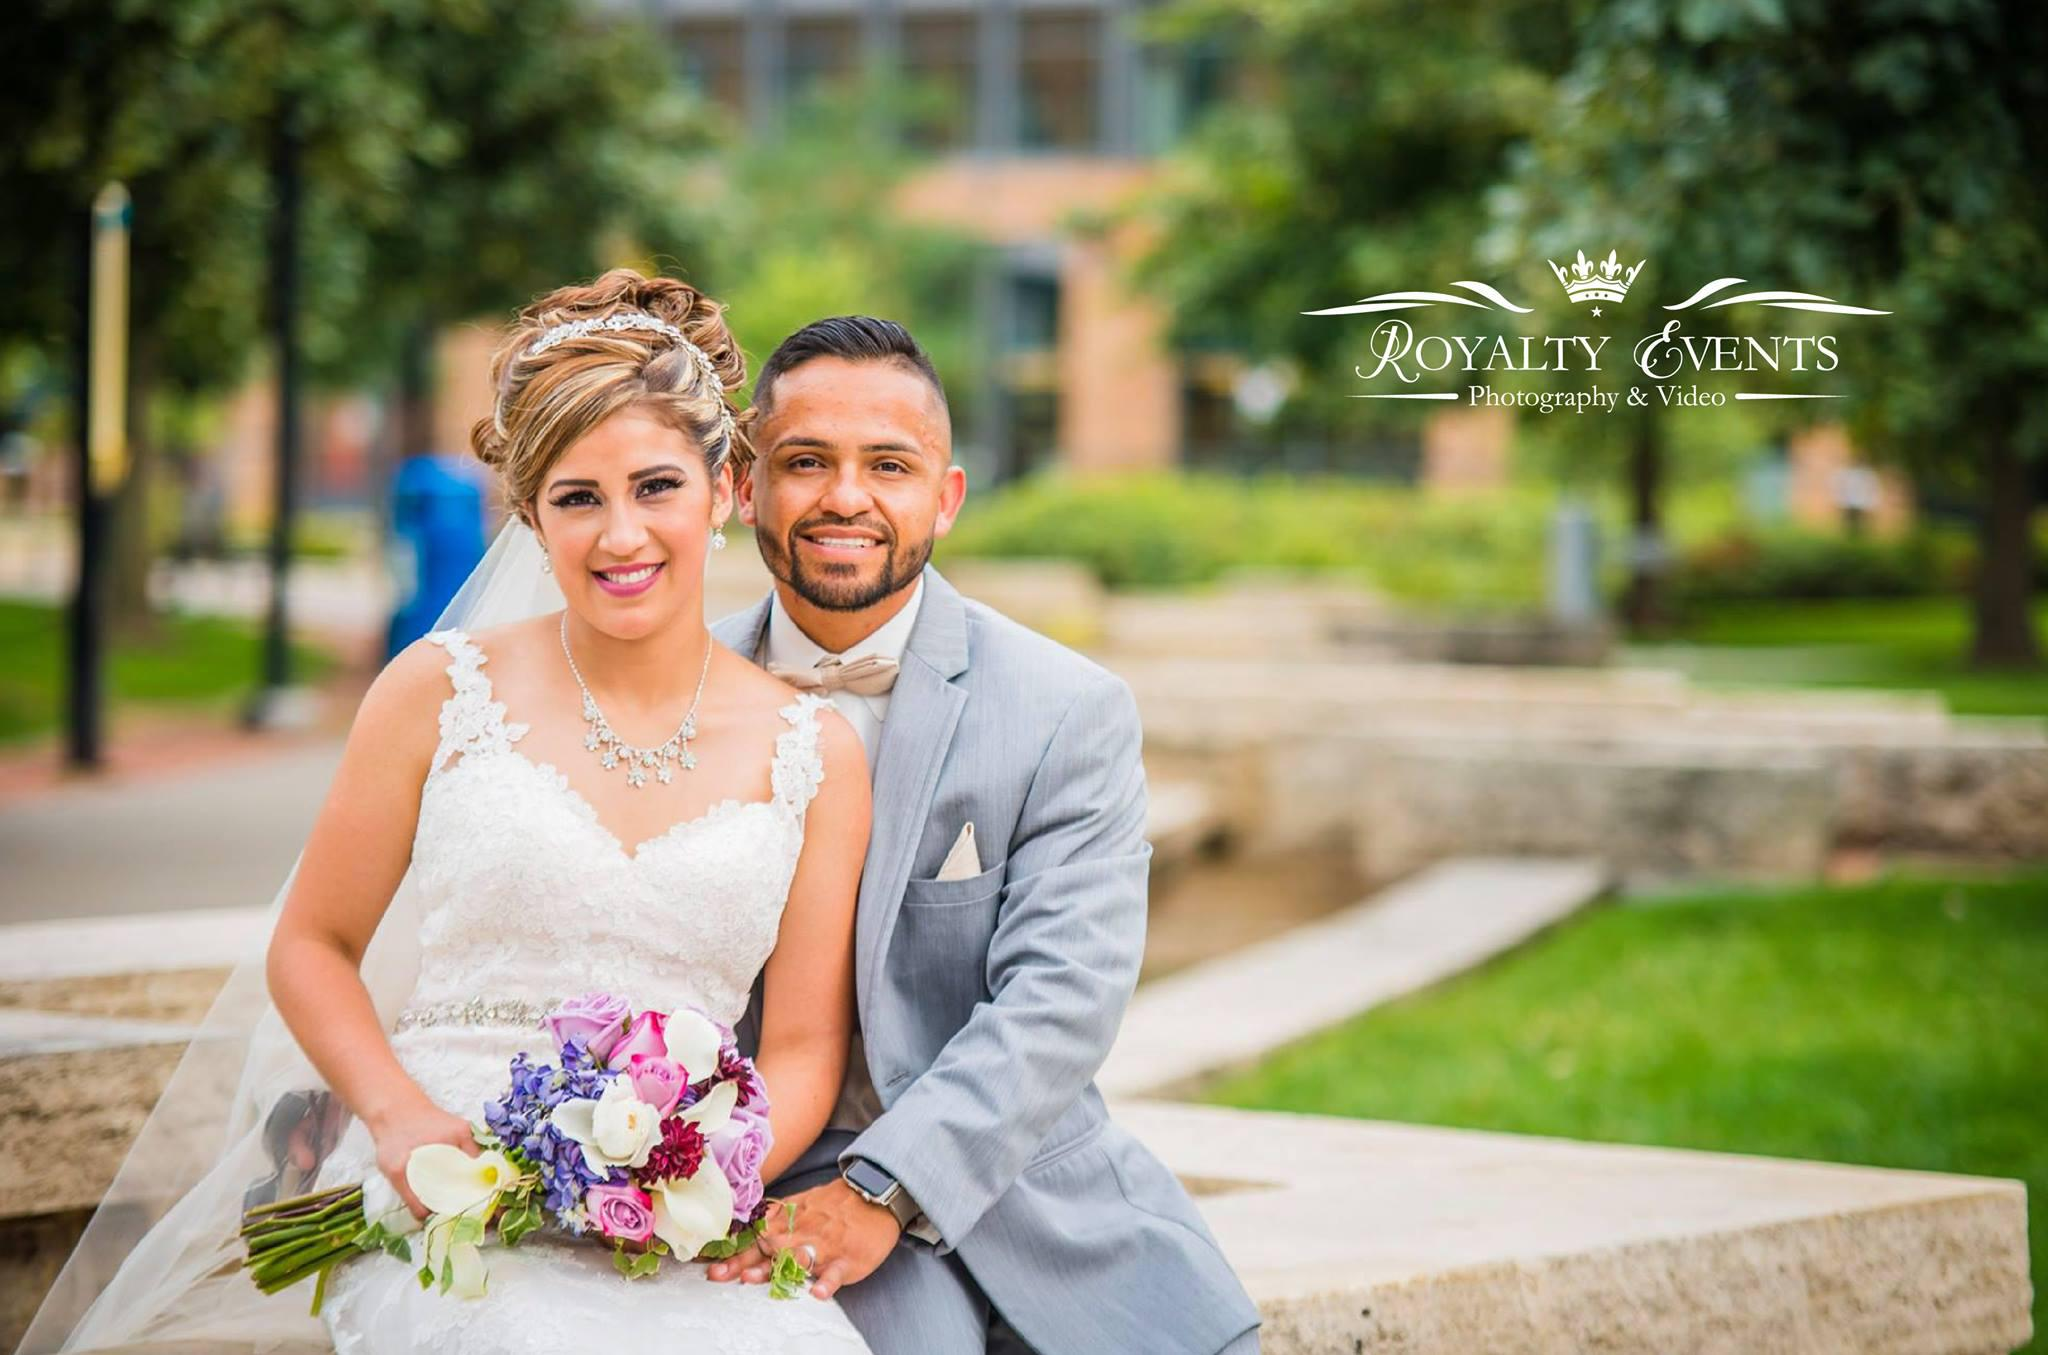 Royalty Events - Photography & Video